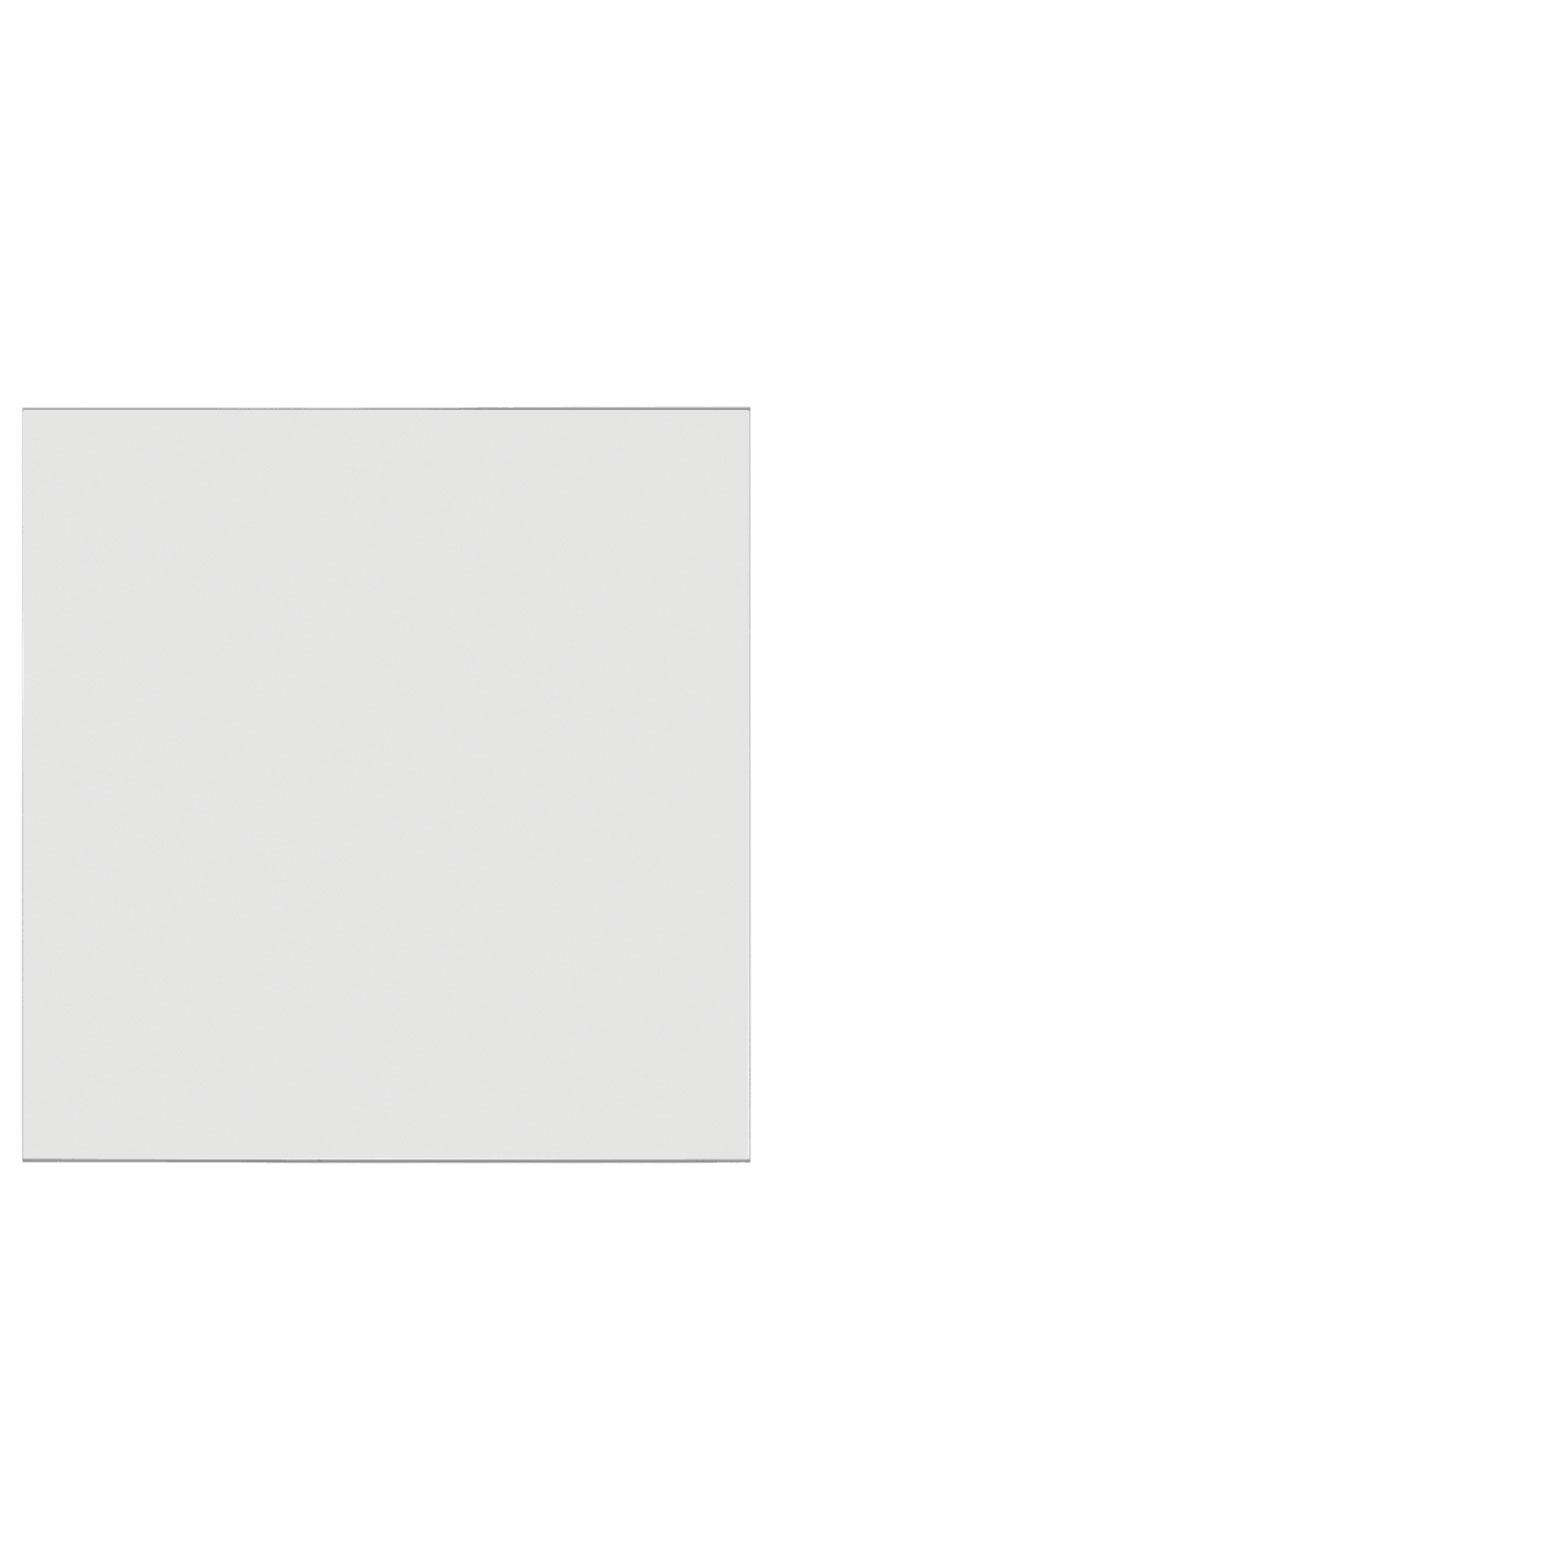 Frosted Acrylic Screen with Square Edges – 36″W x 24″H